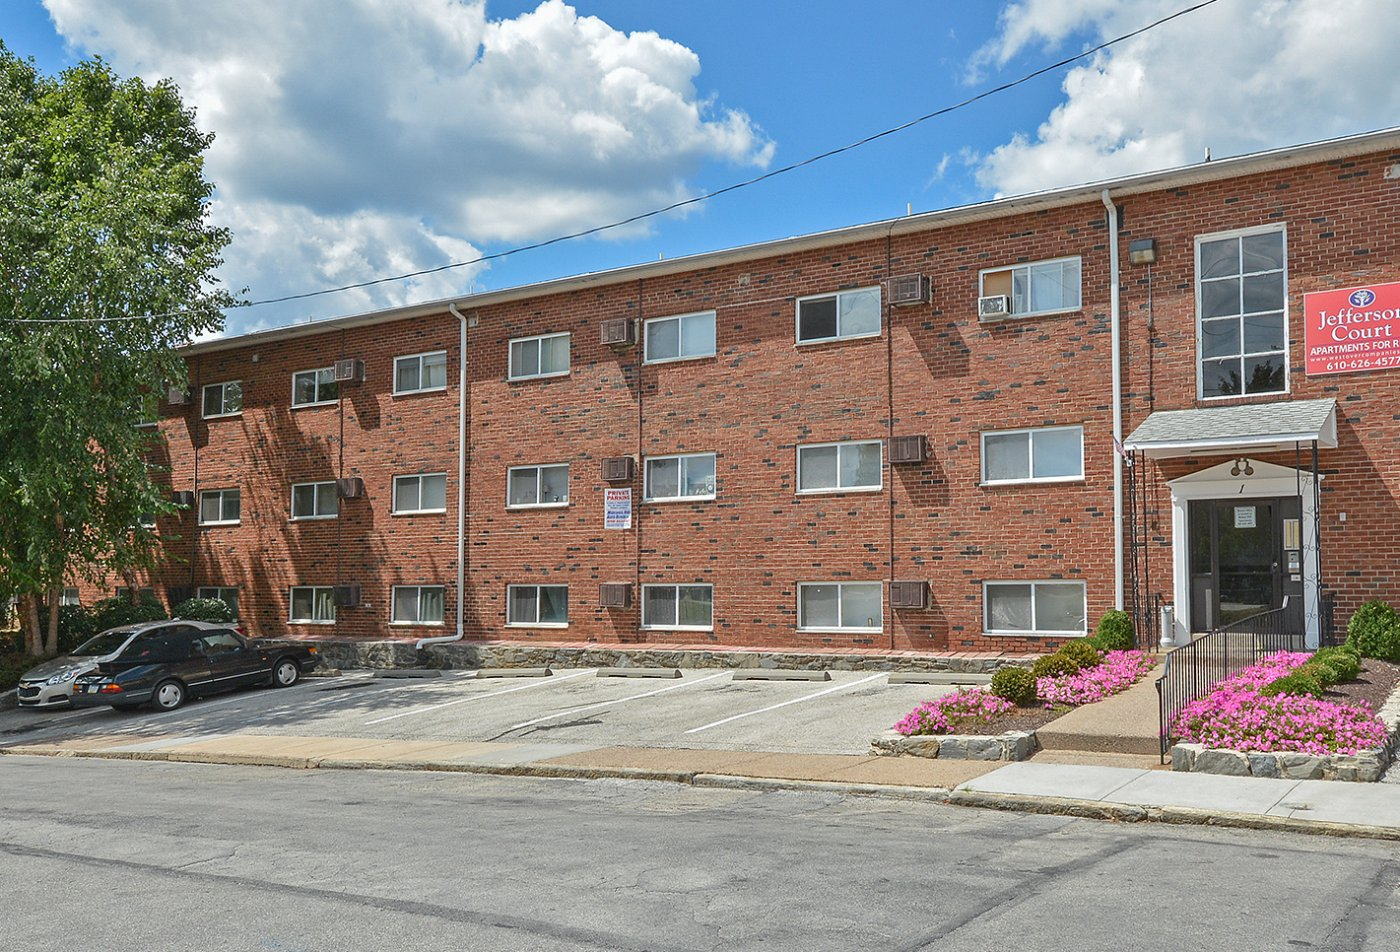 Apartments Homes for rent in Clifton Heights, PA | Jefferson Court Apartments